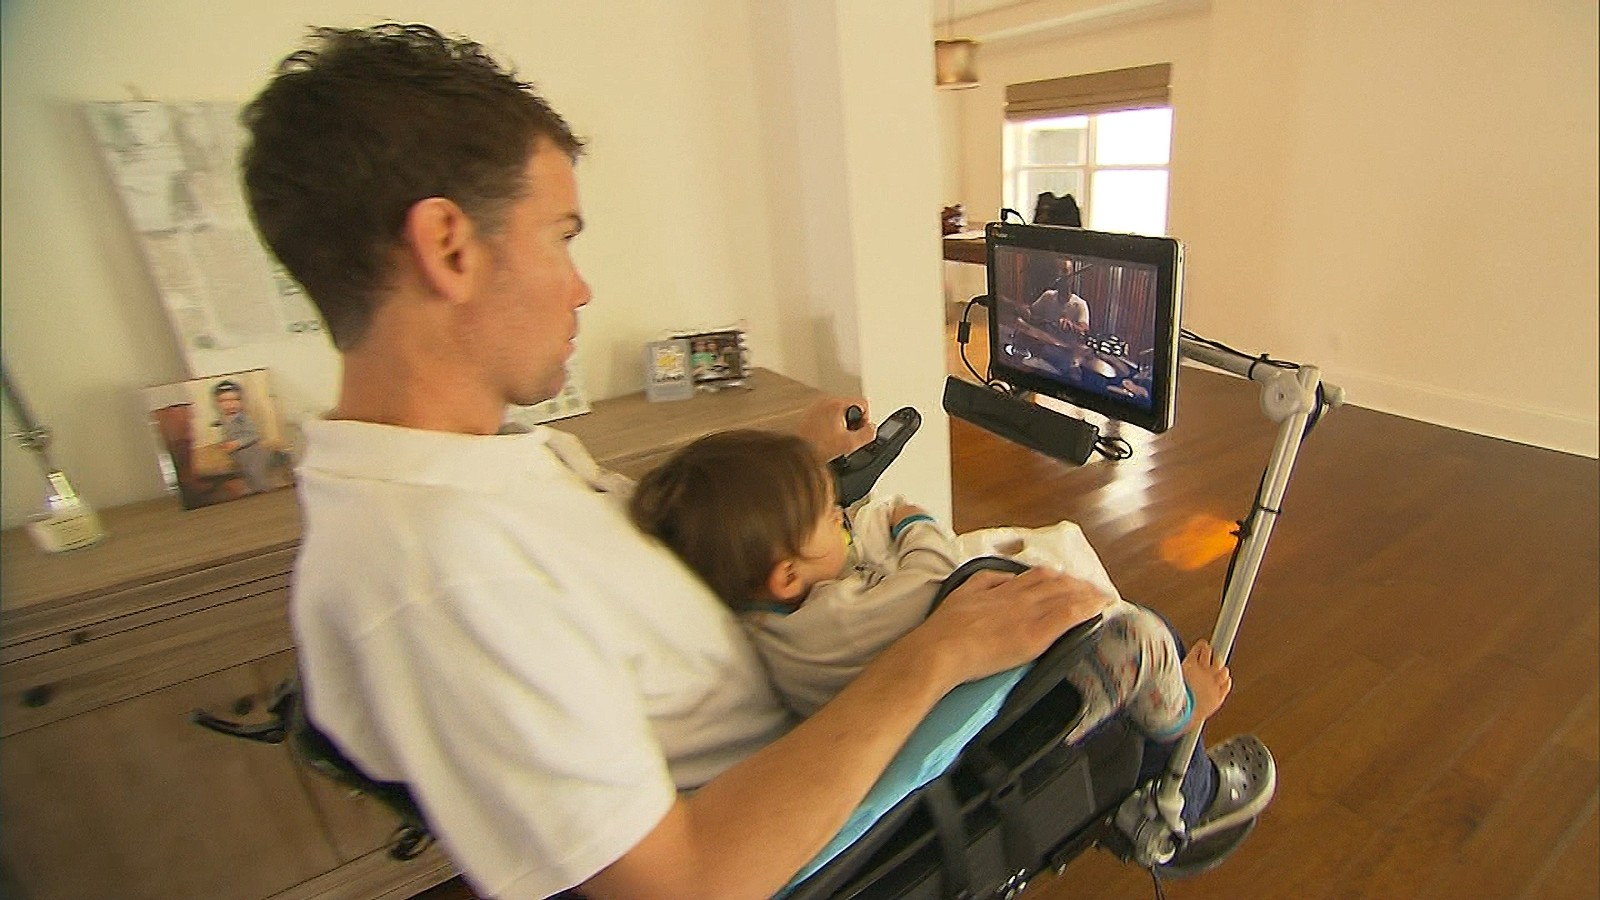 Could this help treat ALS?